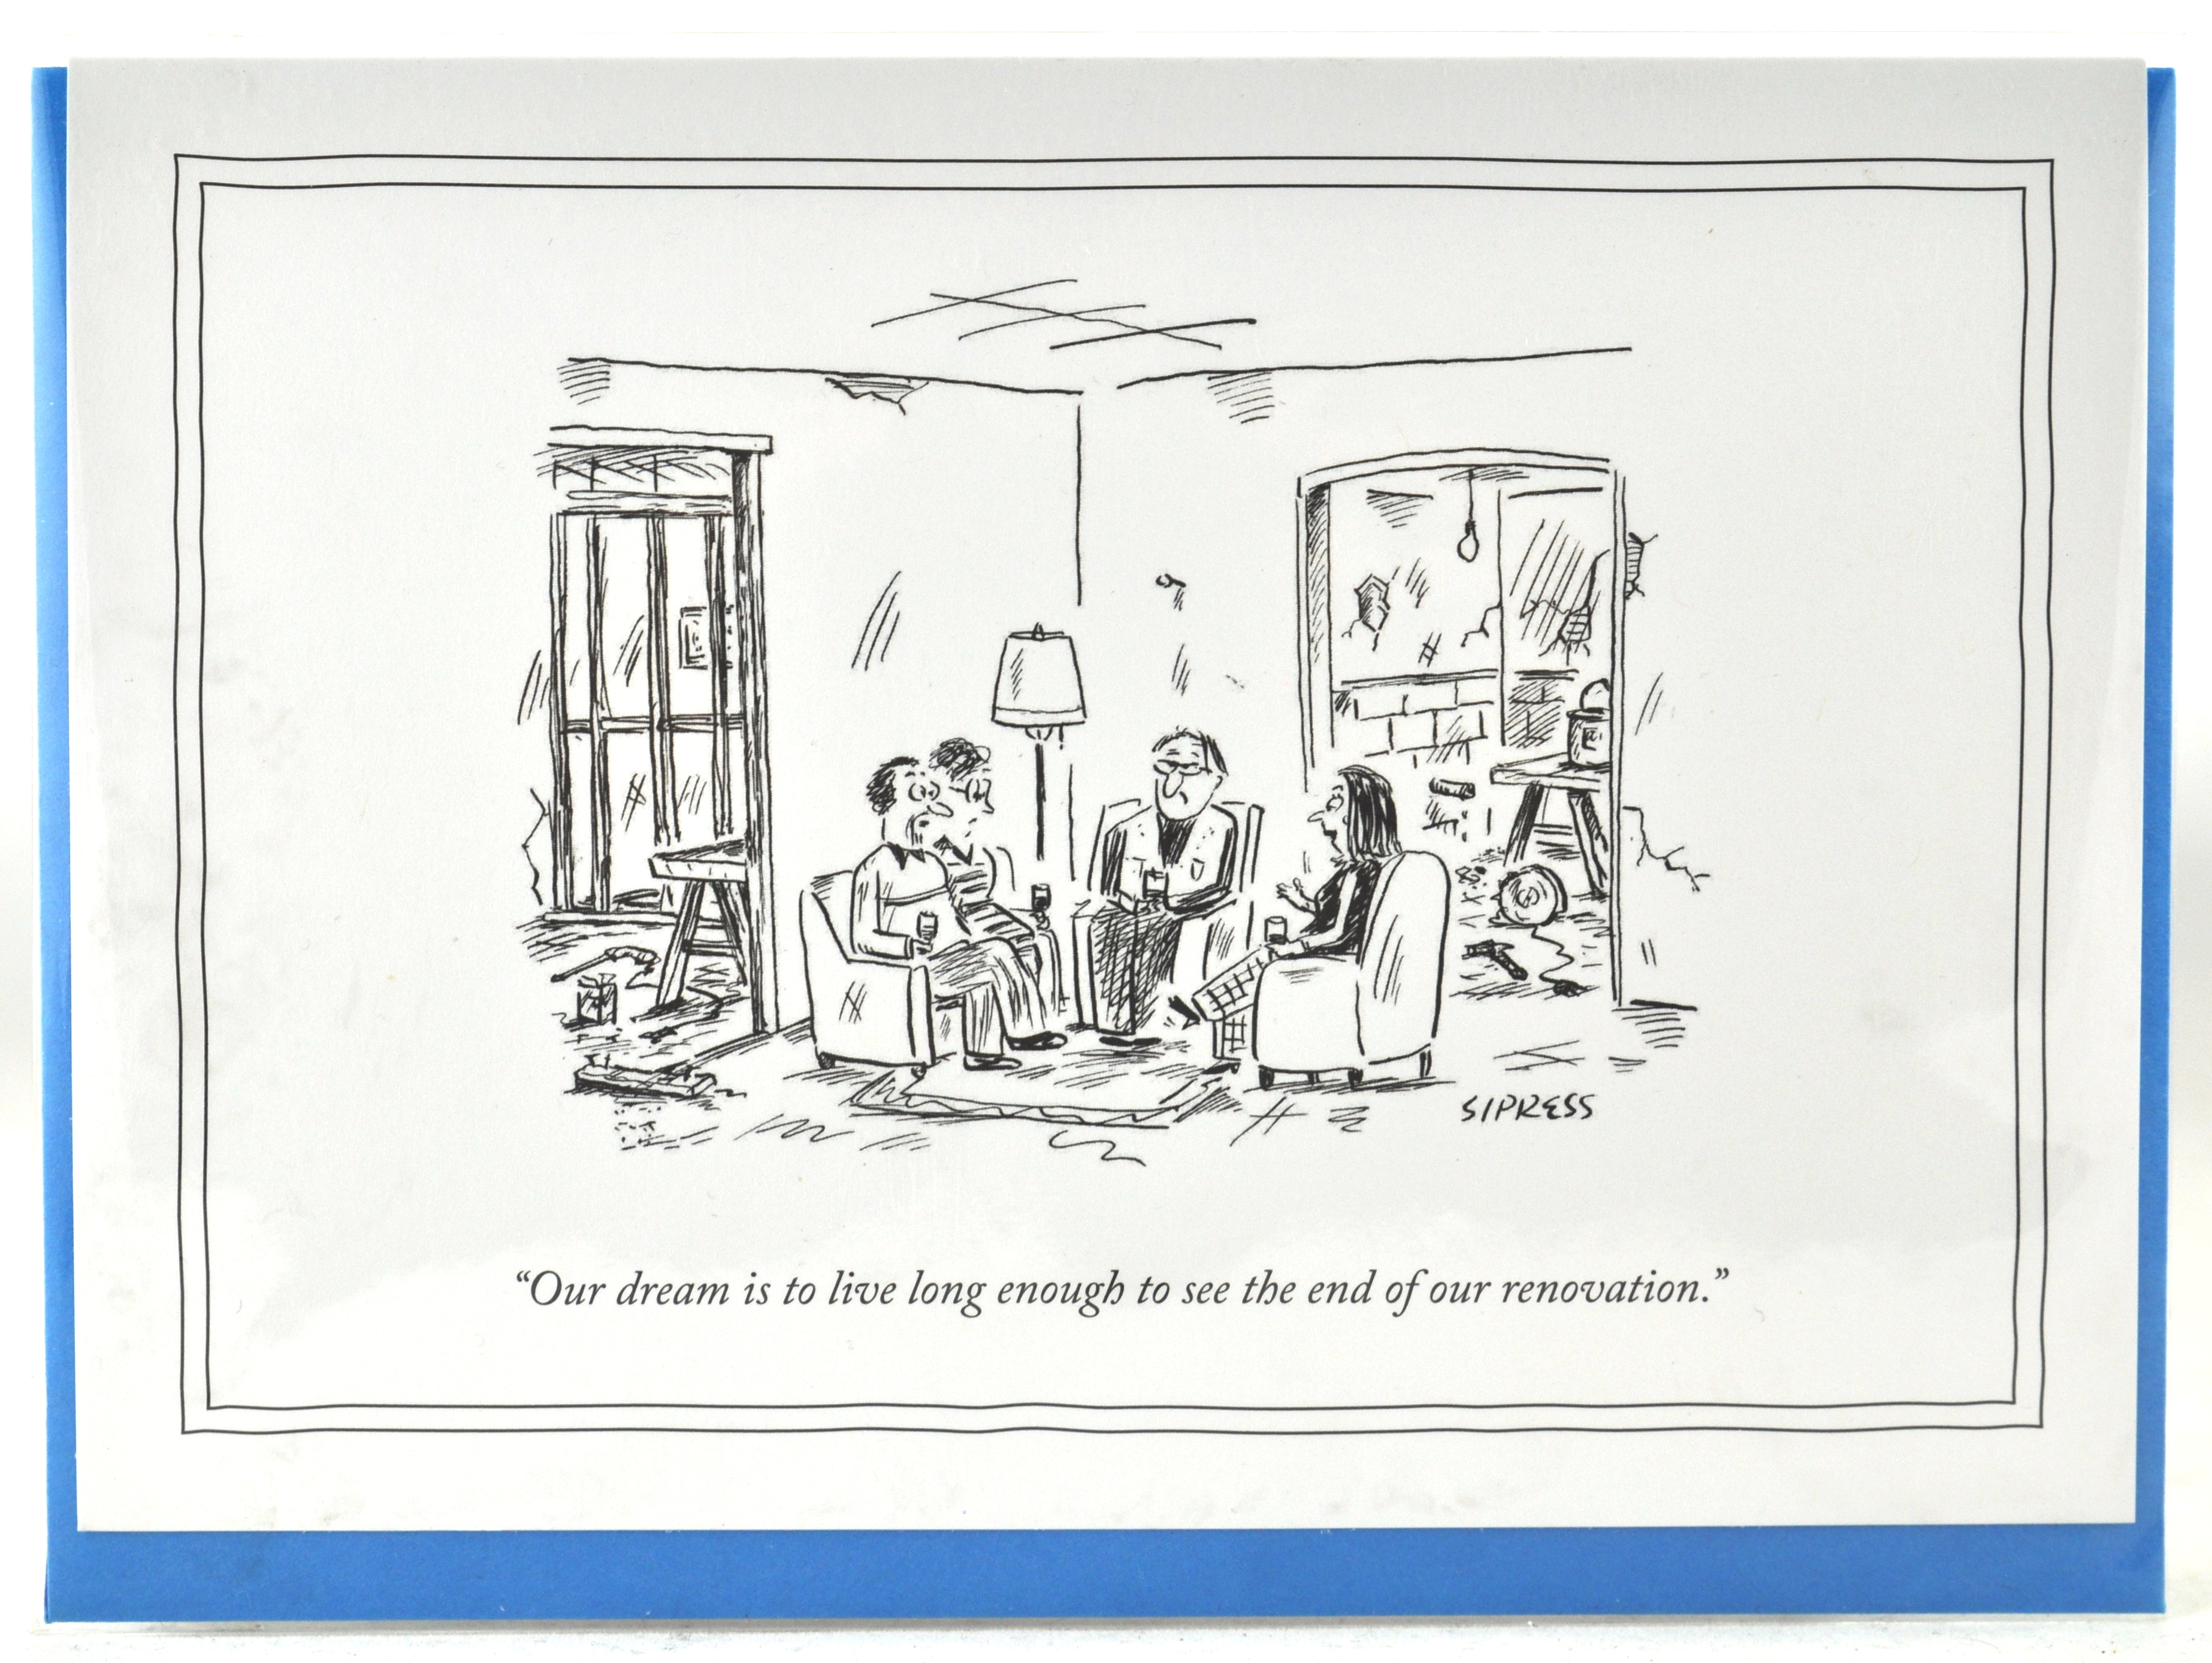 Dream renovation 5 x 7 new yorker card new yorker greeting cards dream renovation 5 x 7 new yorker card new yorker greeting cards funny humorous cartoons for a unique gift at hong kong home essentials m4hsunfo